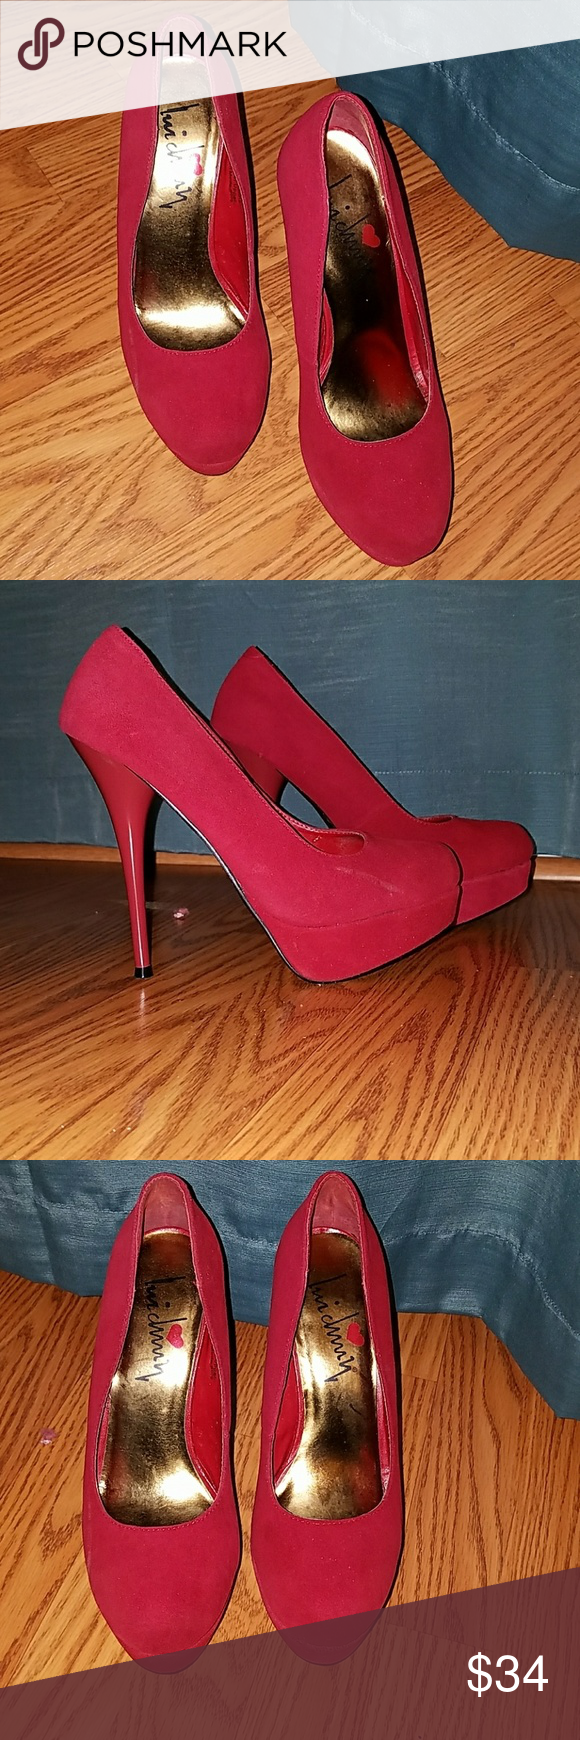 Lui Chung Red Suede Platform Heels Size 9 Lui Chung Red